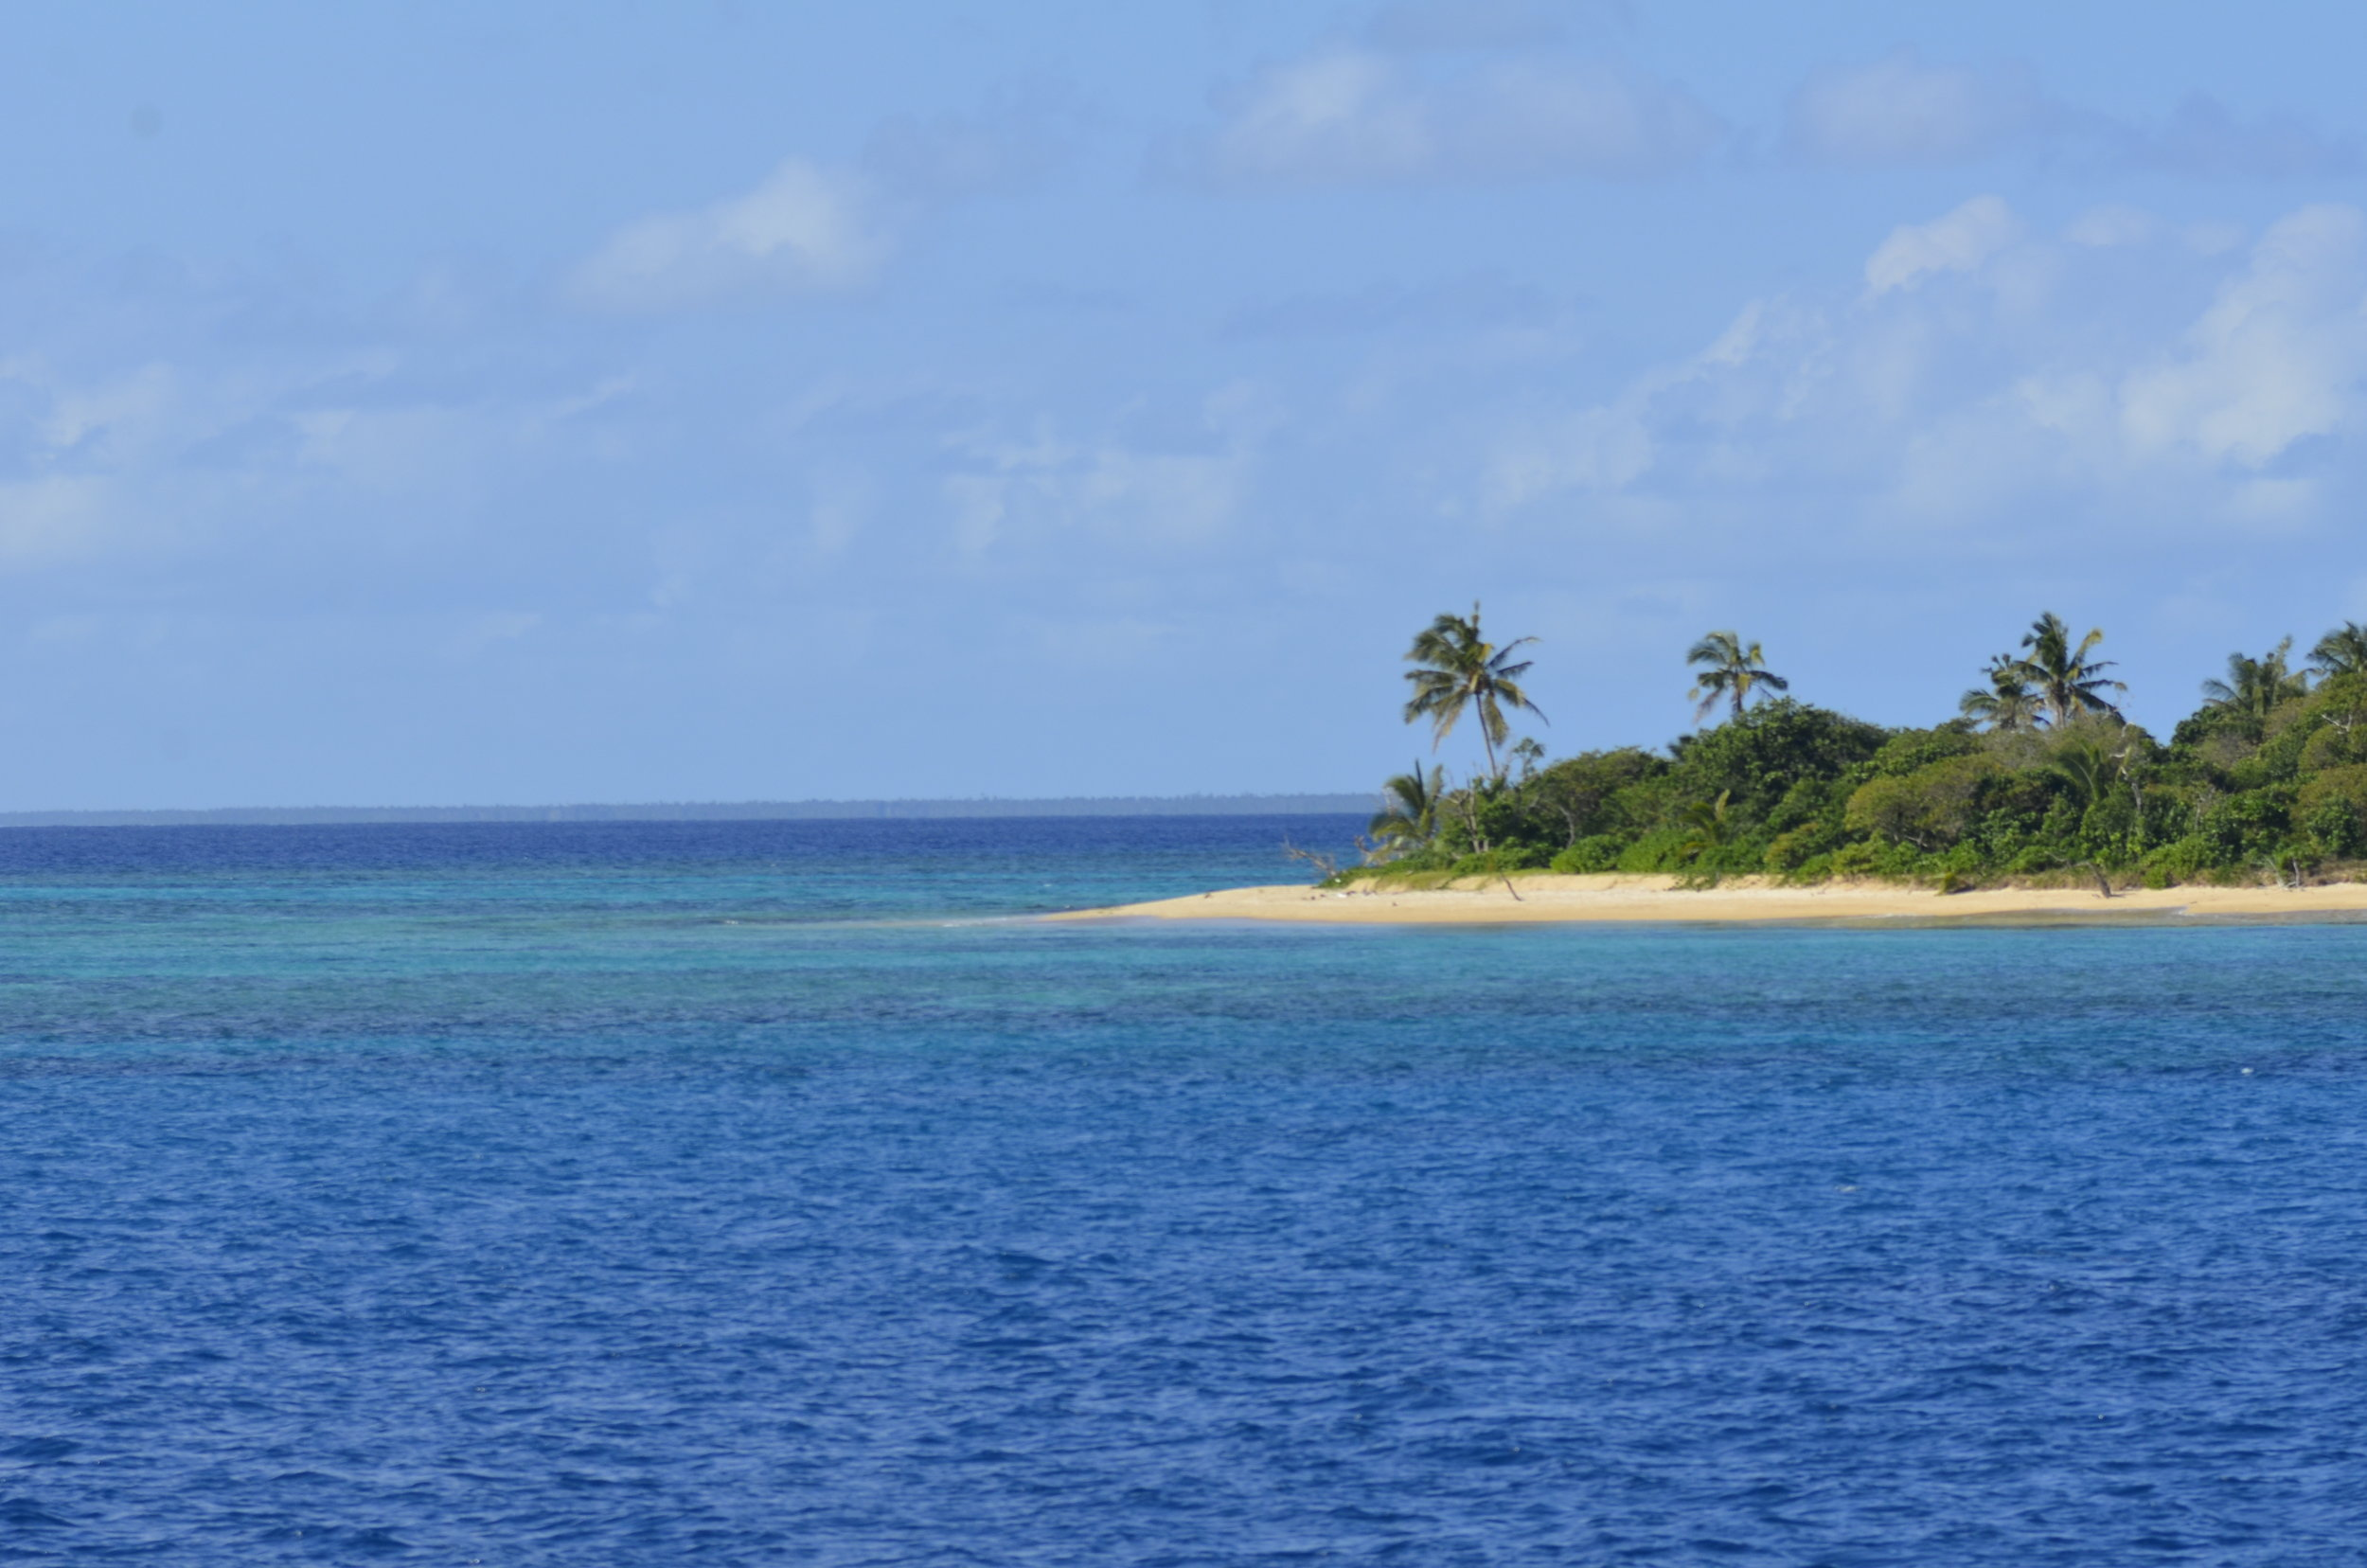 We traveled between lots of islands that looked just like this.